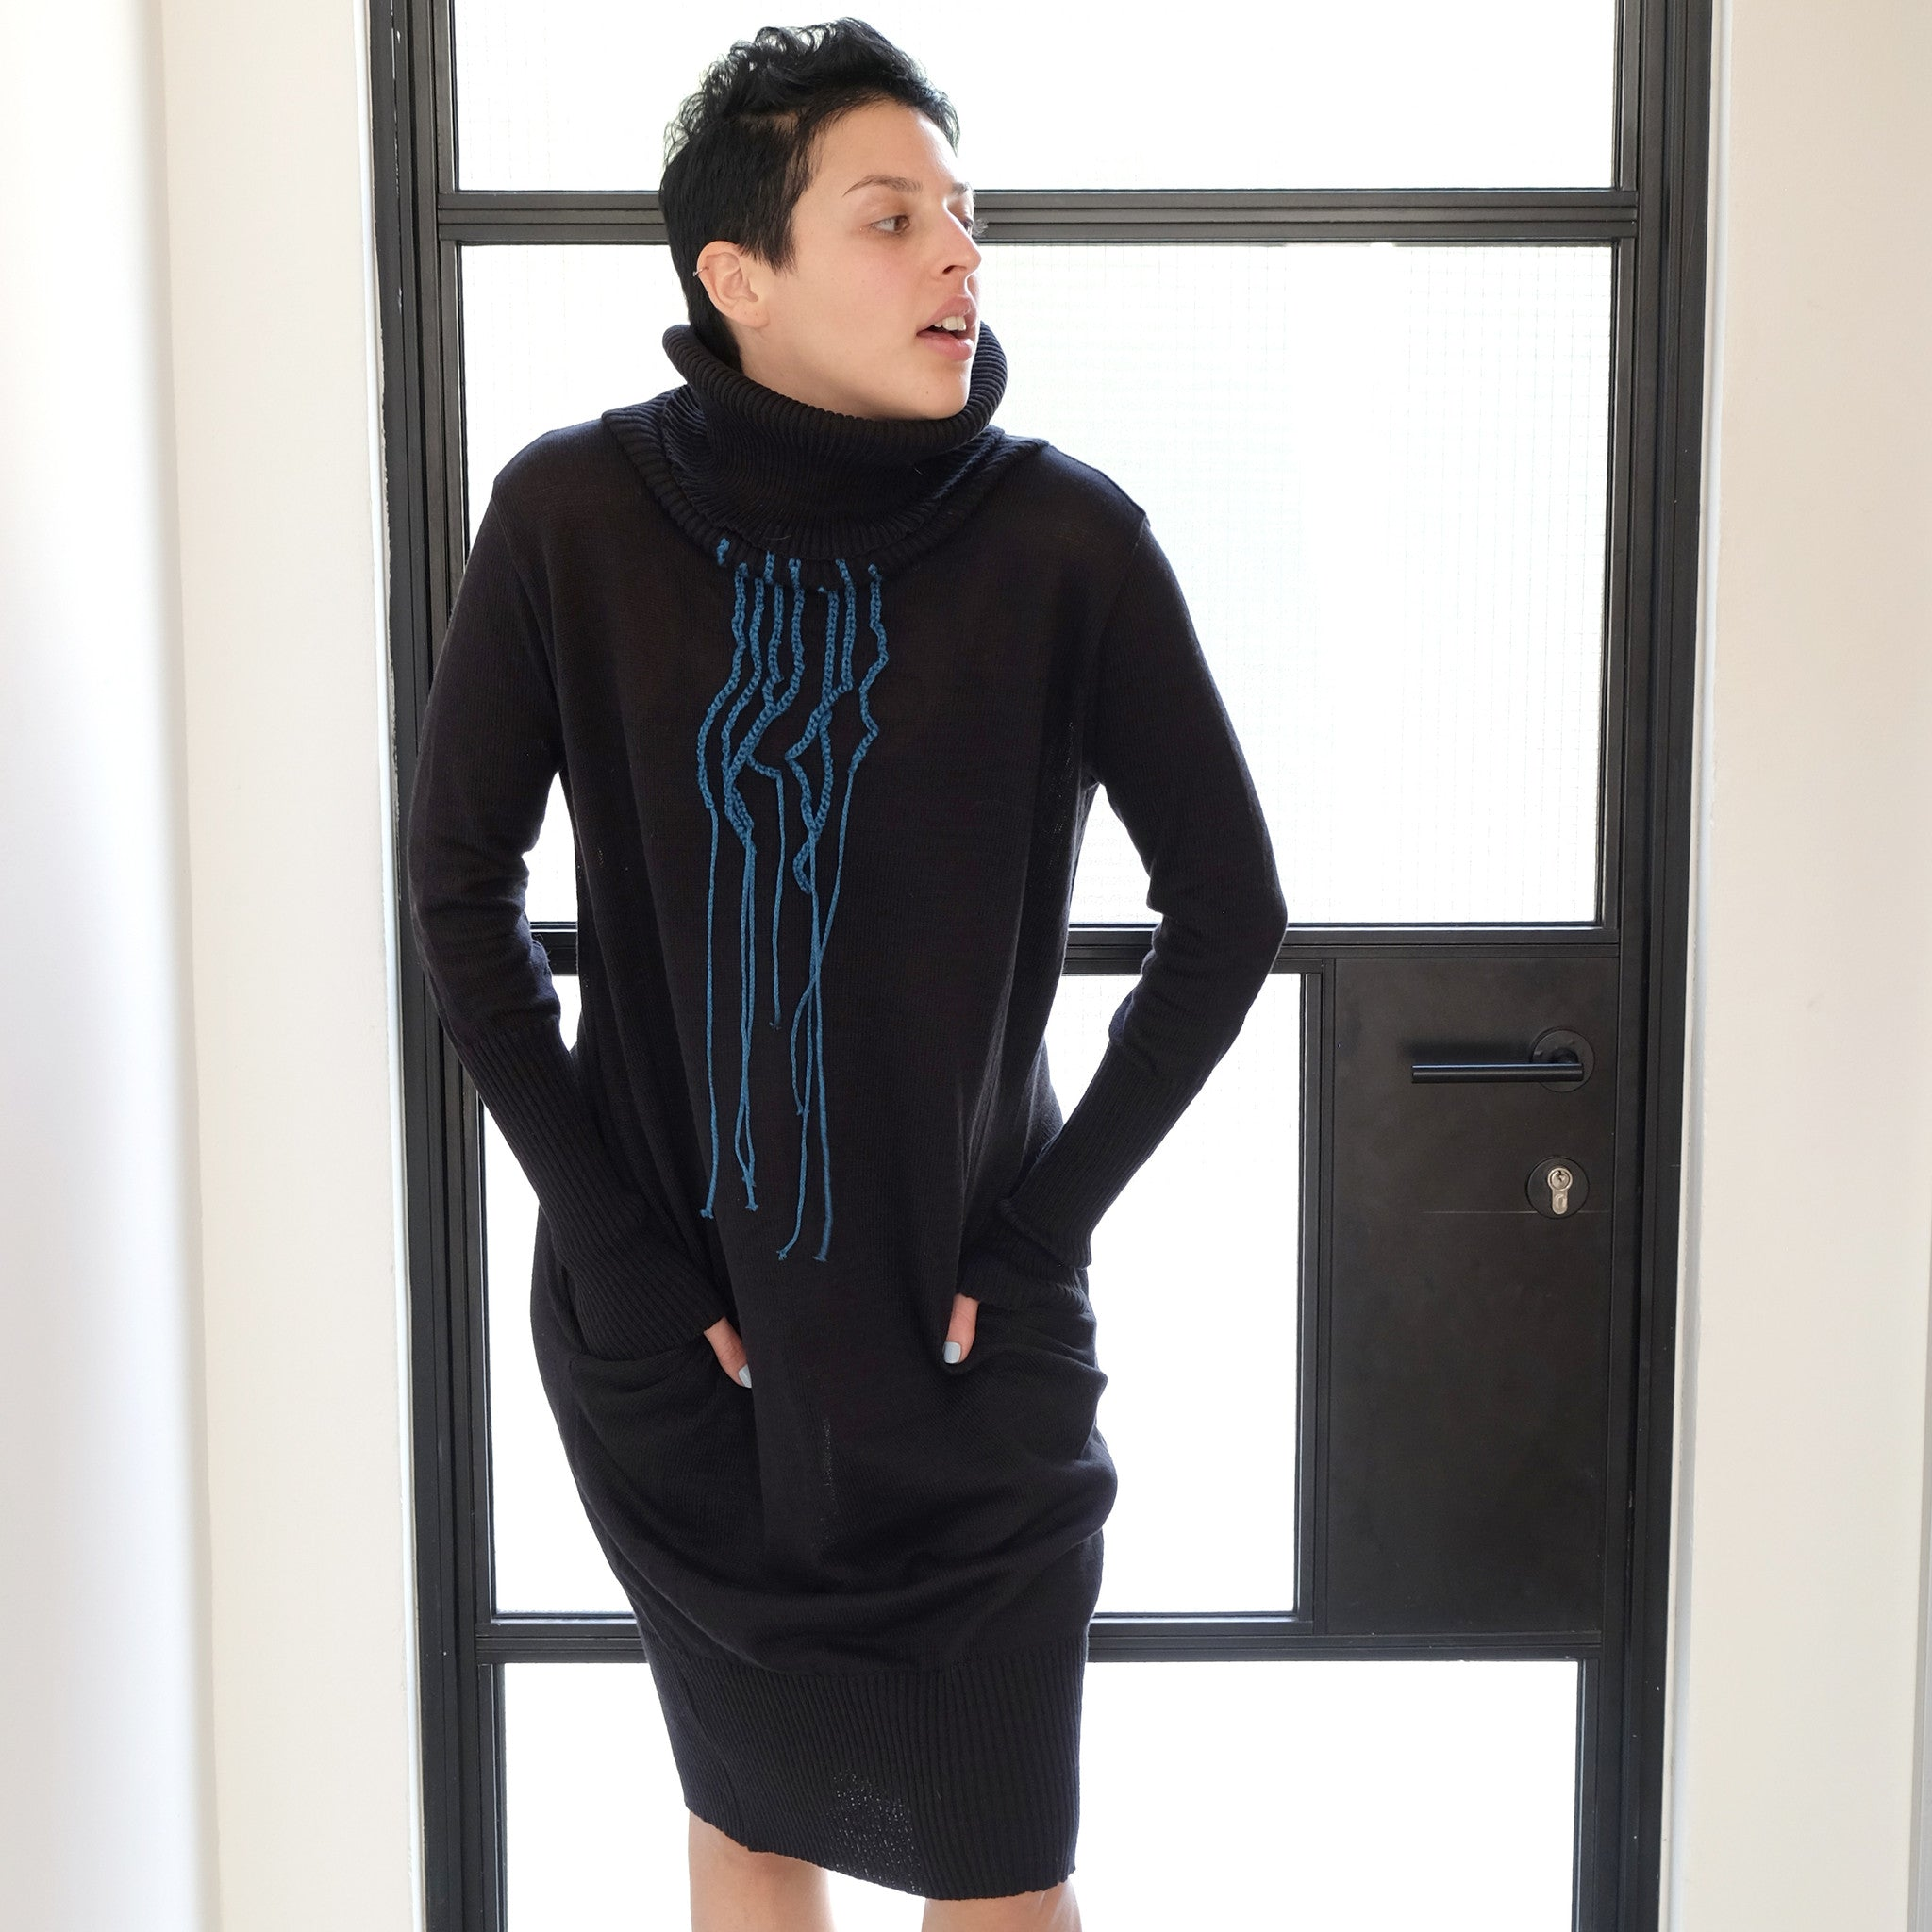 Black OOAK knitted winter dress #2 - DuendeFashion  - 3